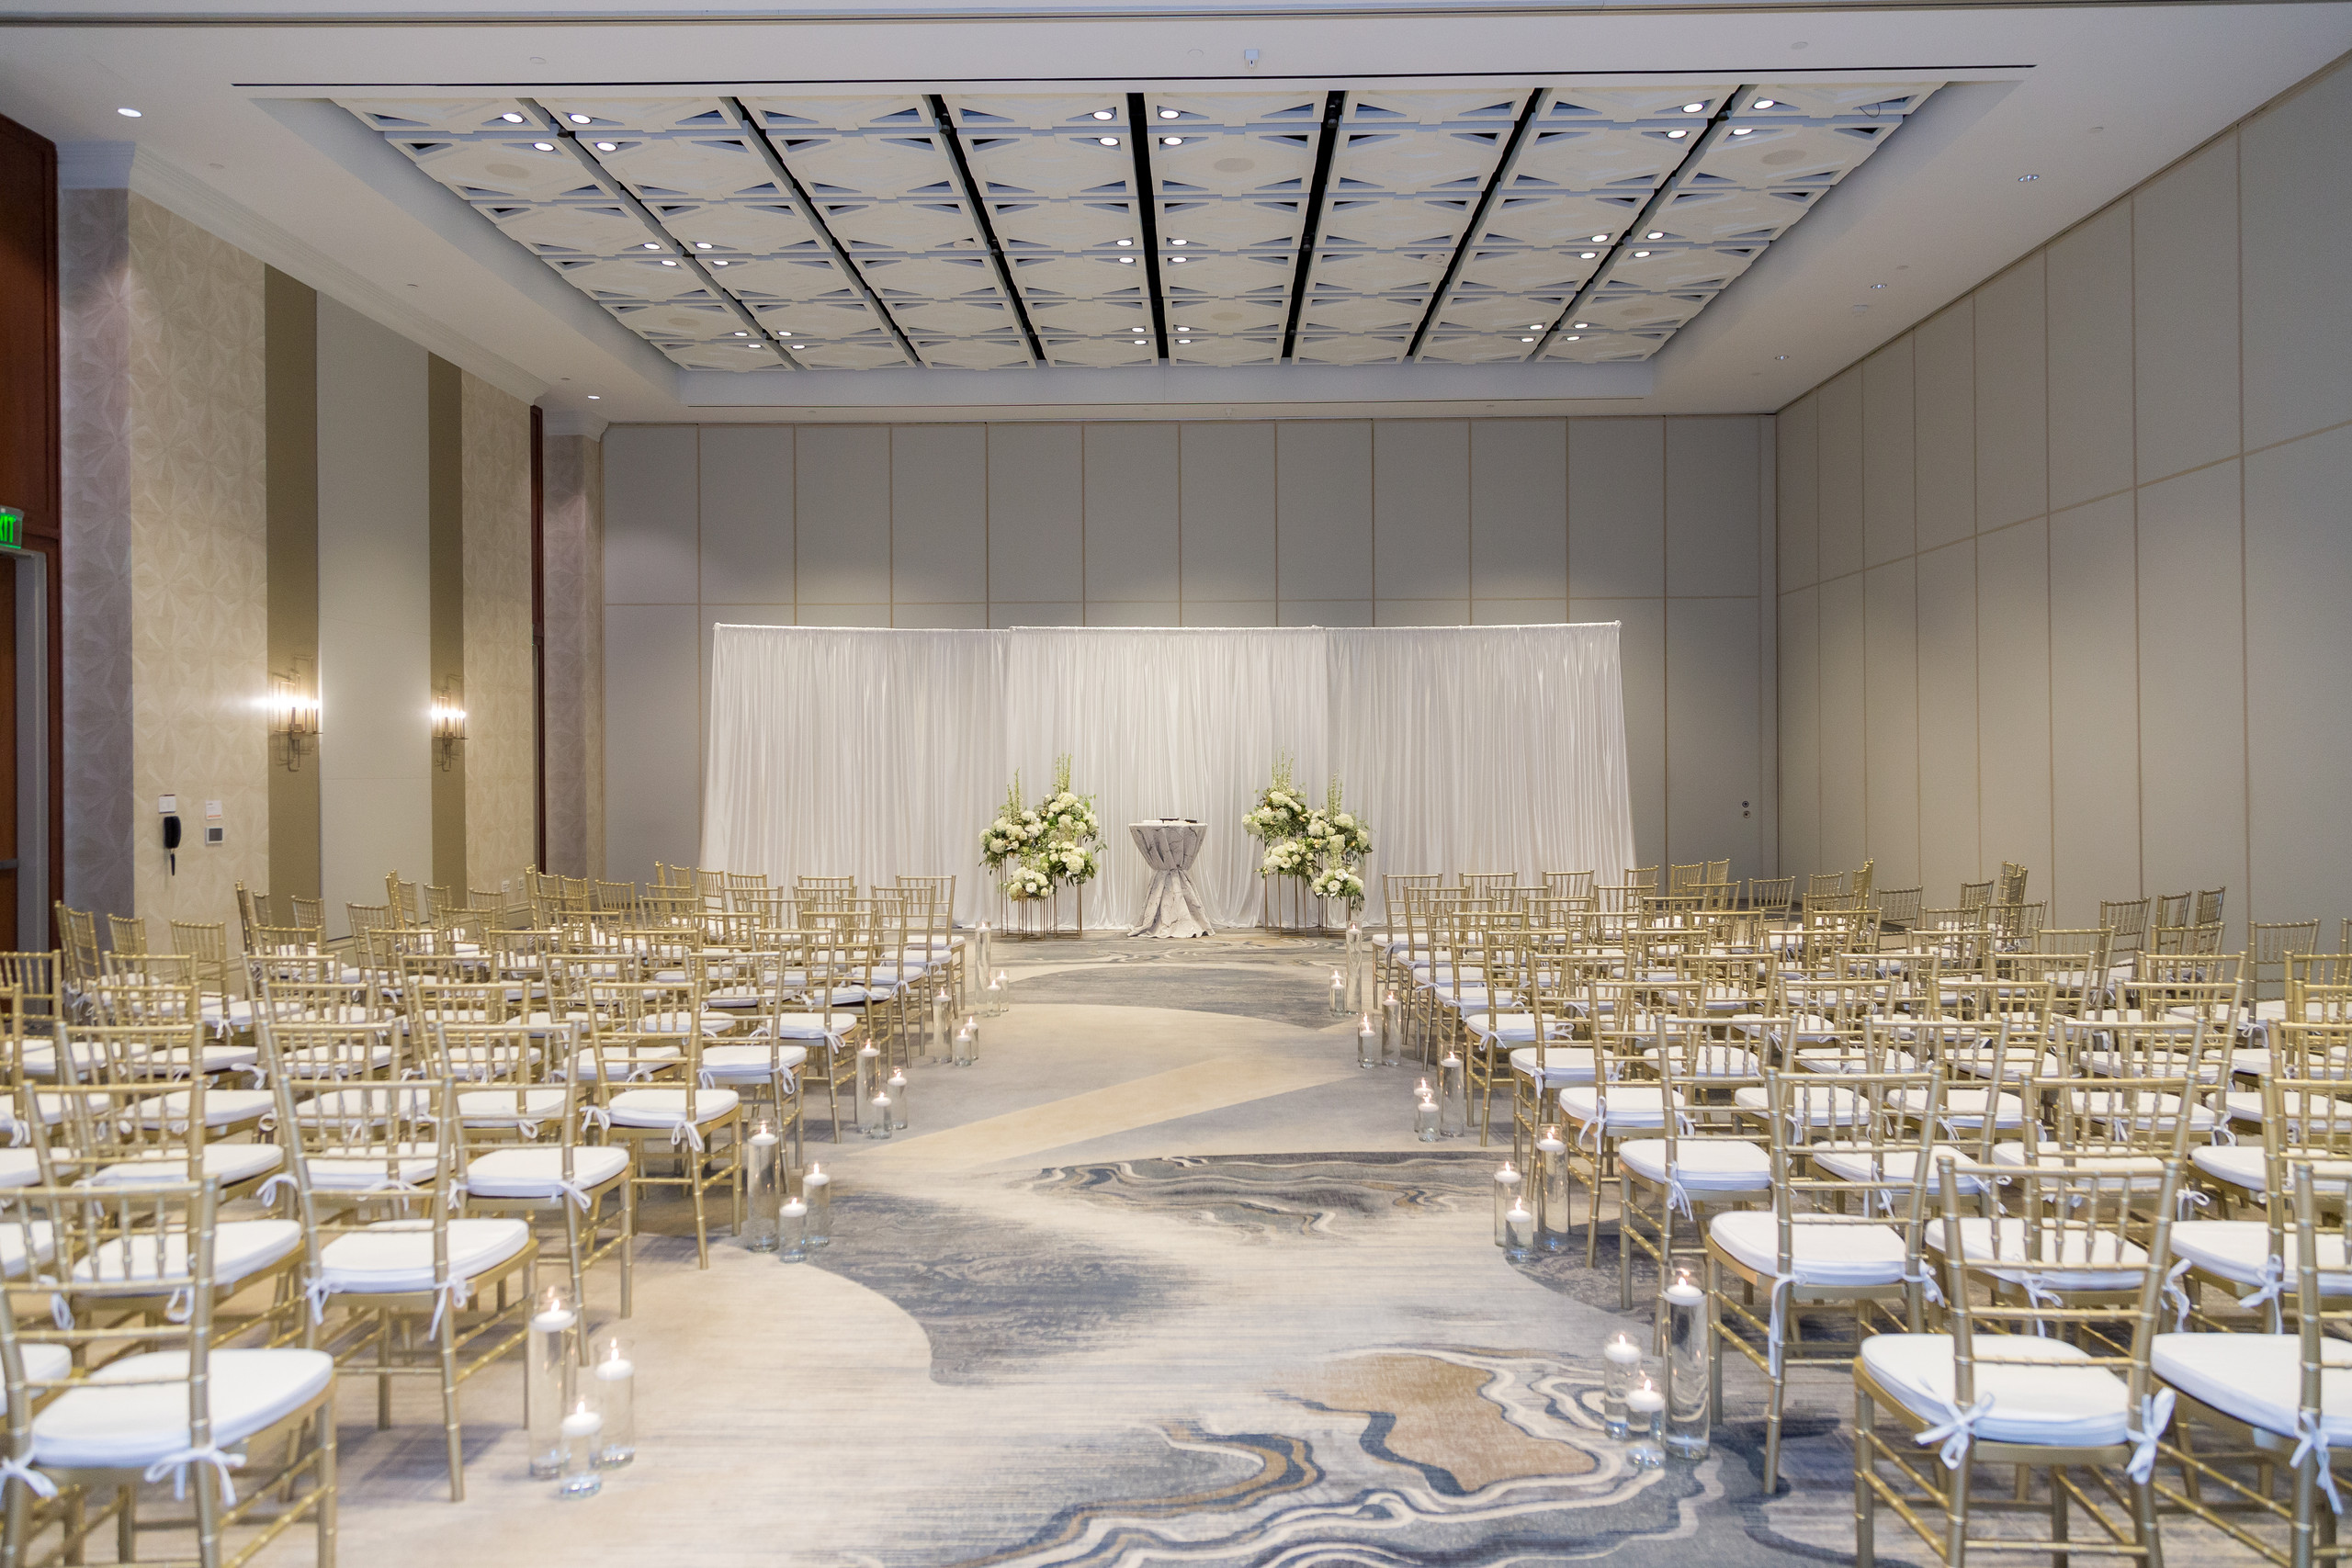 The elegant wedding setup for the wedding ceremony at the Hilton Main in Norfolk, Virginia.